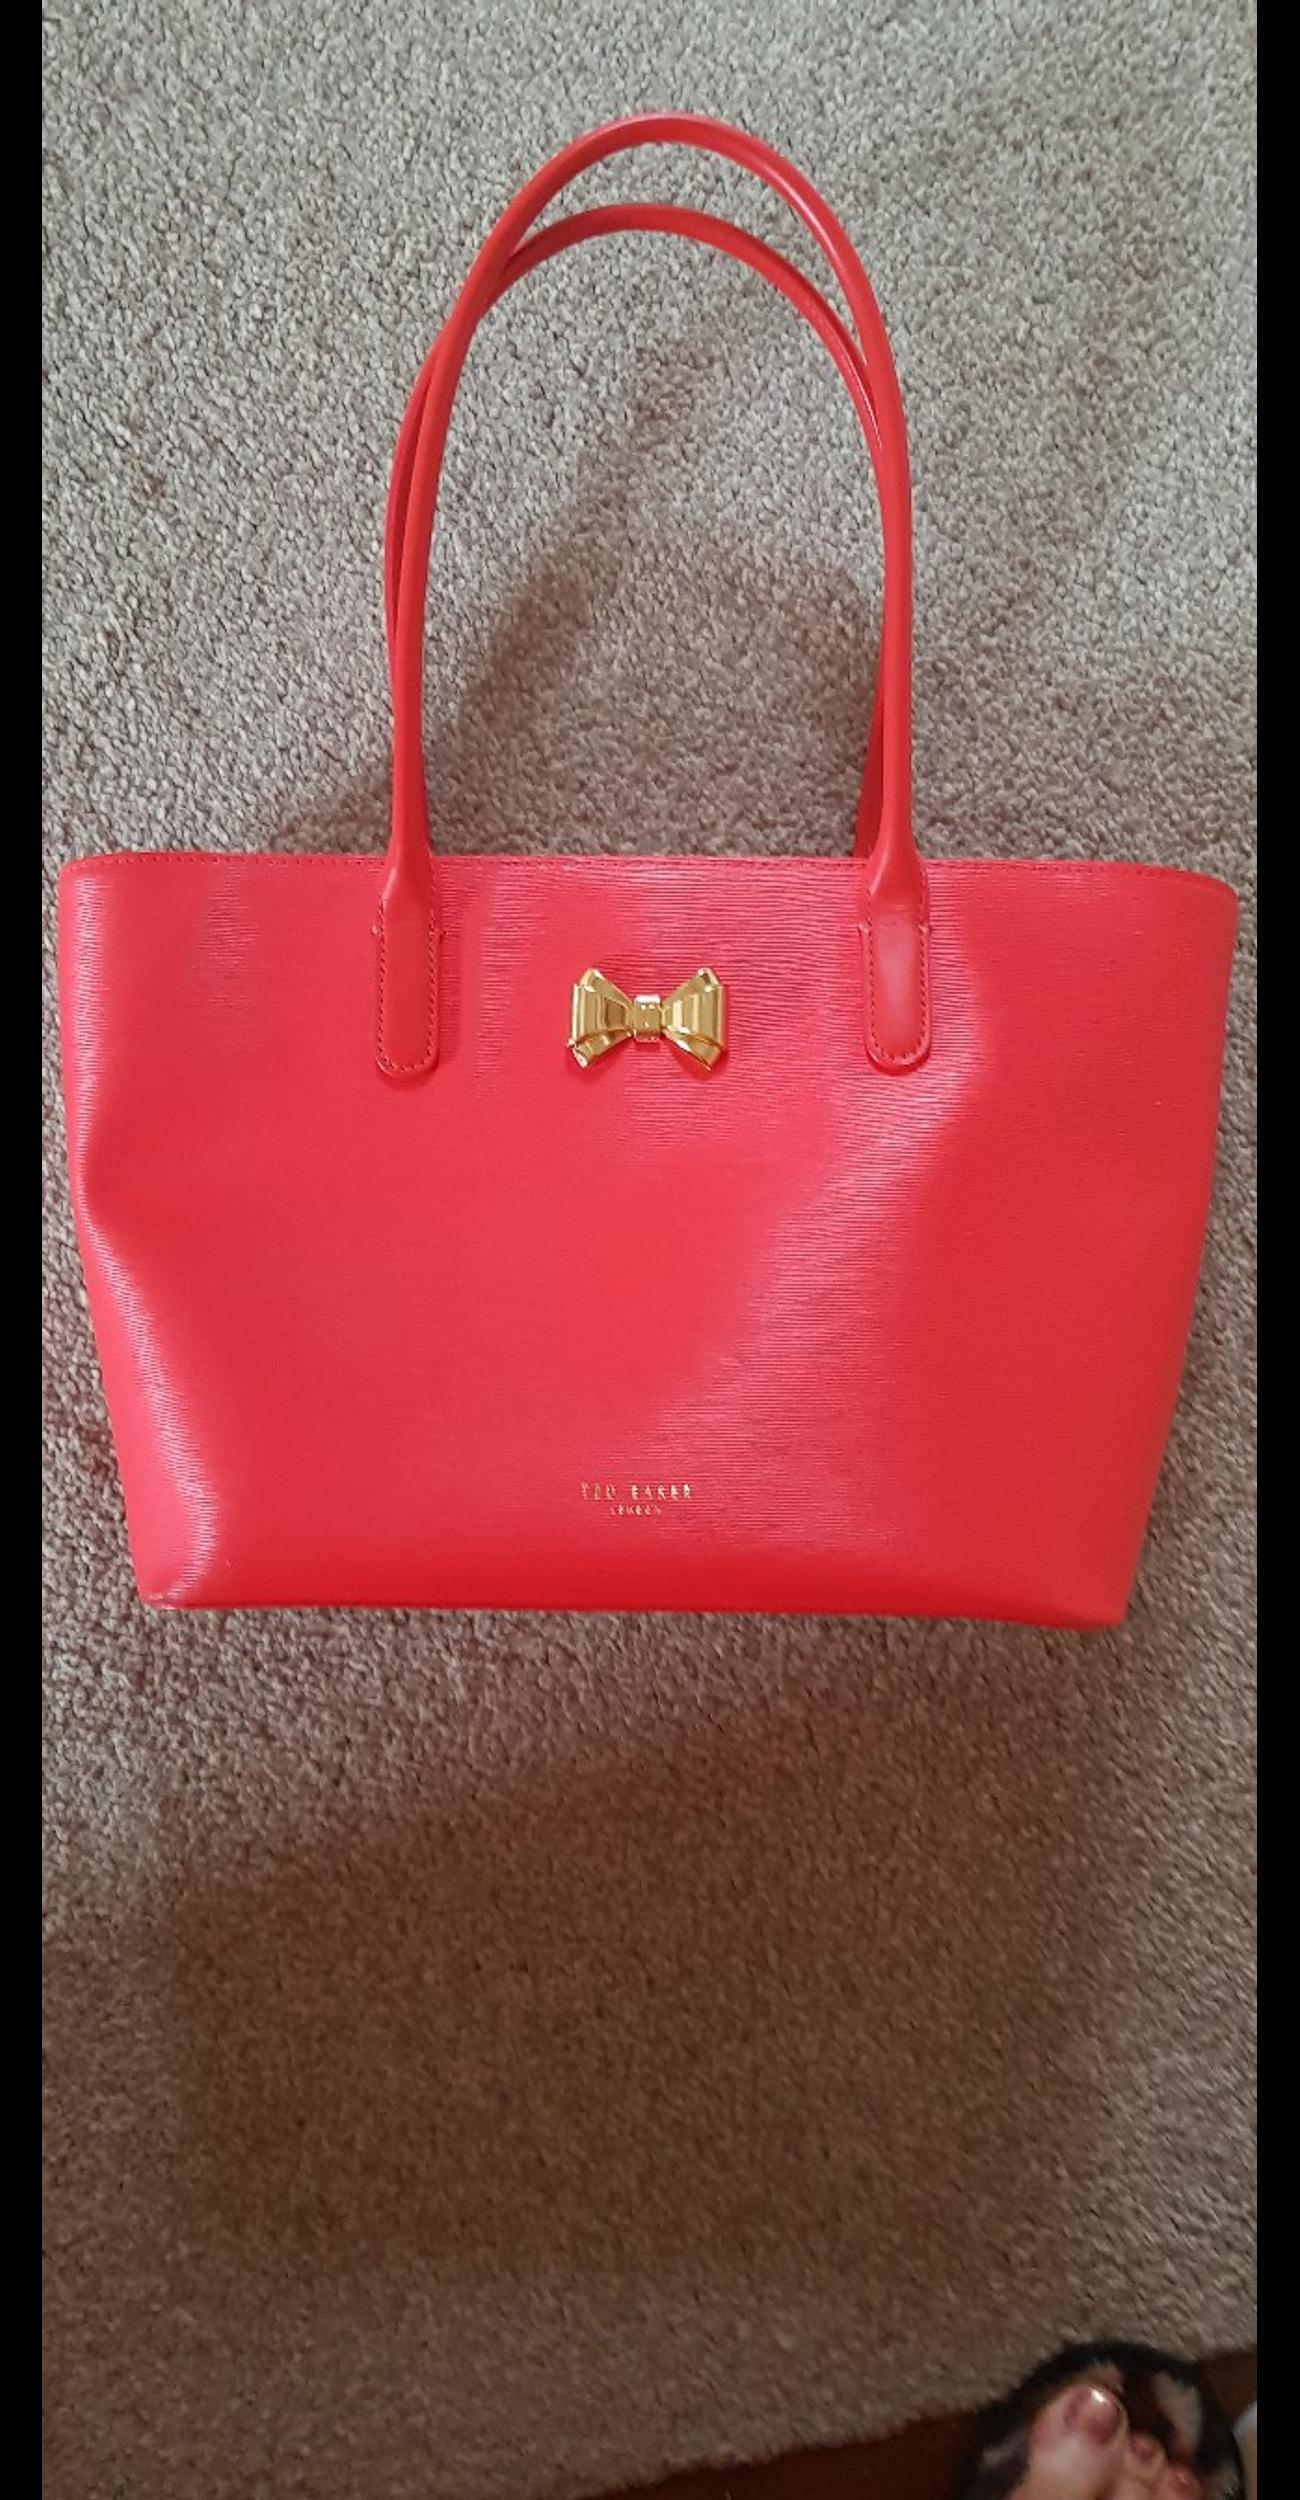 e8b86e0d1ce Red Ted Baker tote bag in PO15 Fareham for £20.00 for sale - Shpock